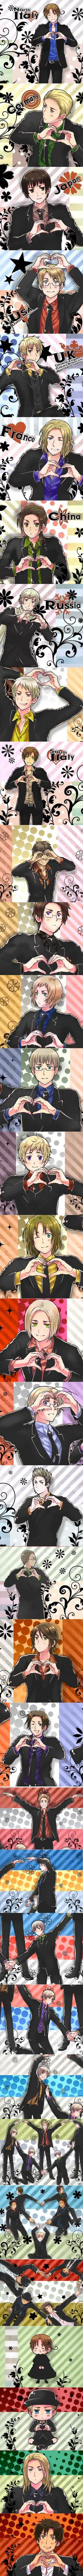 Lots of love from the Hetalia Boys! SO CUTE!!!!!!!!!!!!!!!!!!!!!!!!!!!!!!!!!!!!!!!!!!!!!!!!!!!!!!!!!!!!!!!!!!!!!!!!!!!!!!!!!!!!!!!!!!!!!!!!!!!!   <3 <3 <3 <3 <3 <3 <3 <3 <3 <3 <3 <3 <3 <3 <3 <3 <3